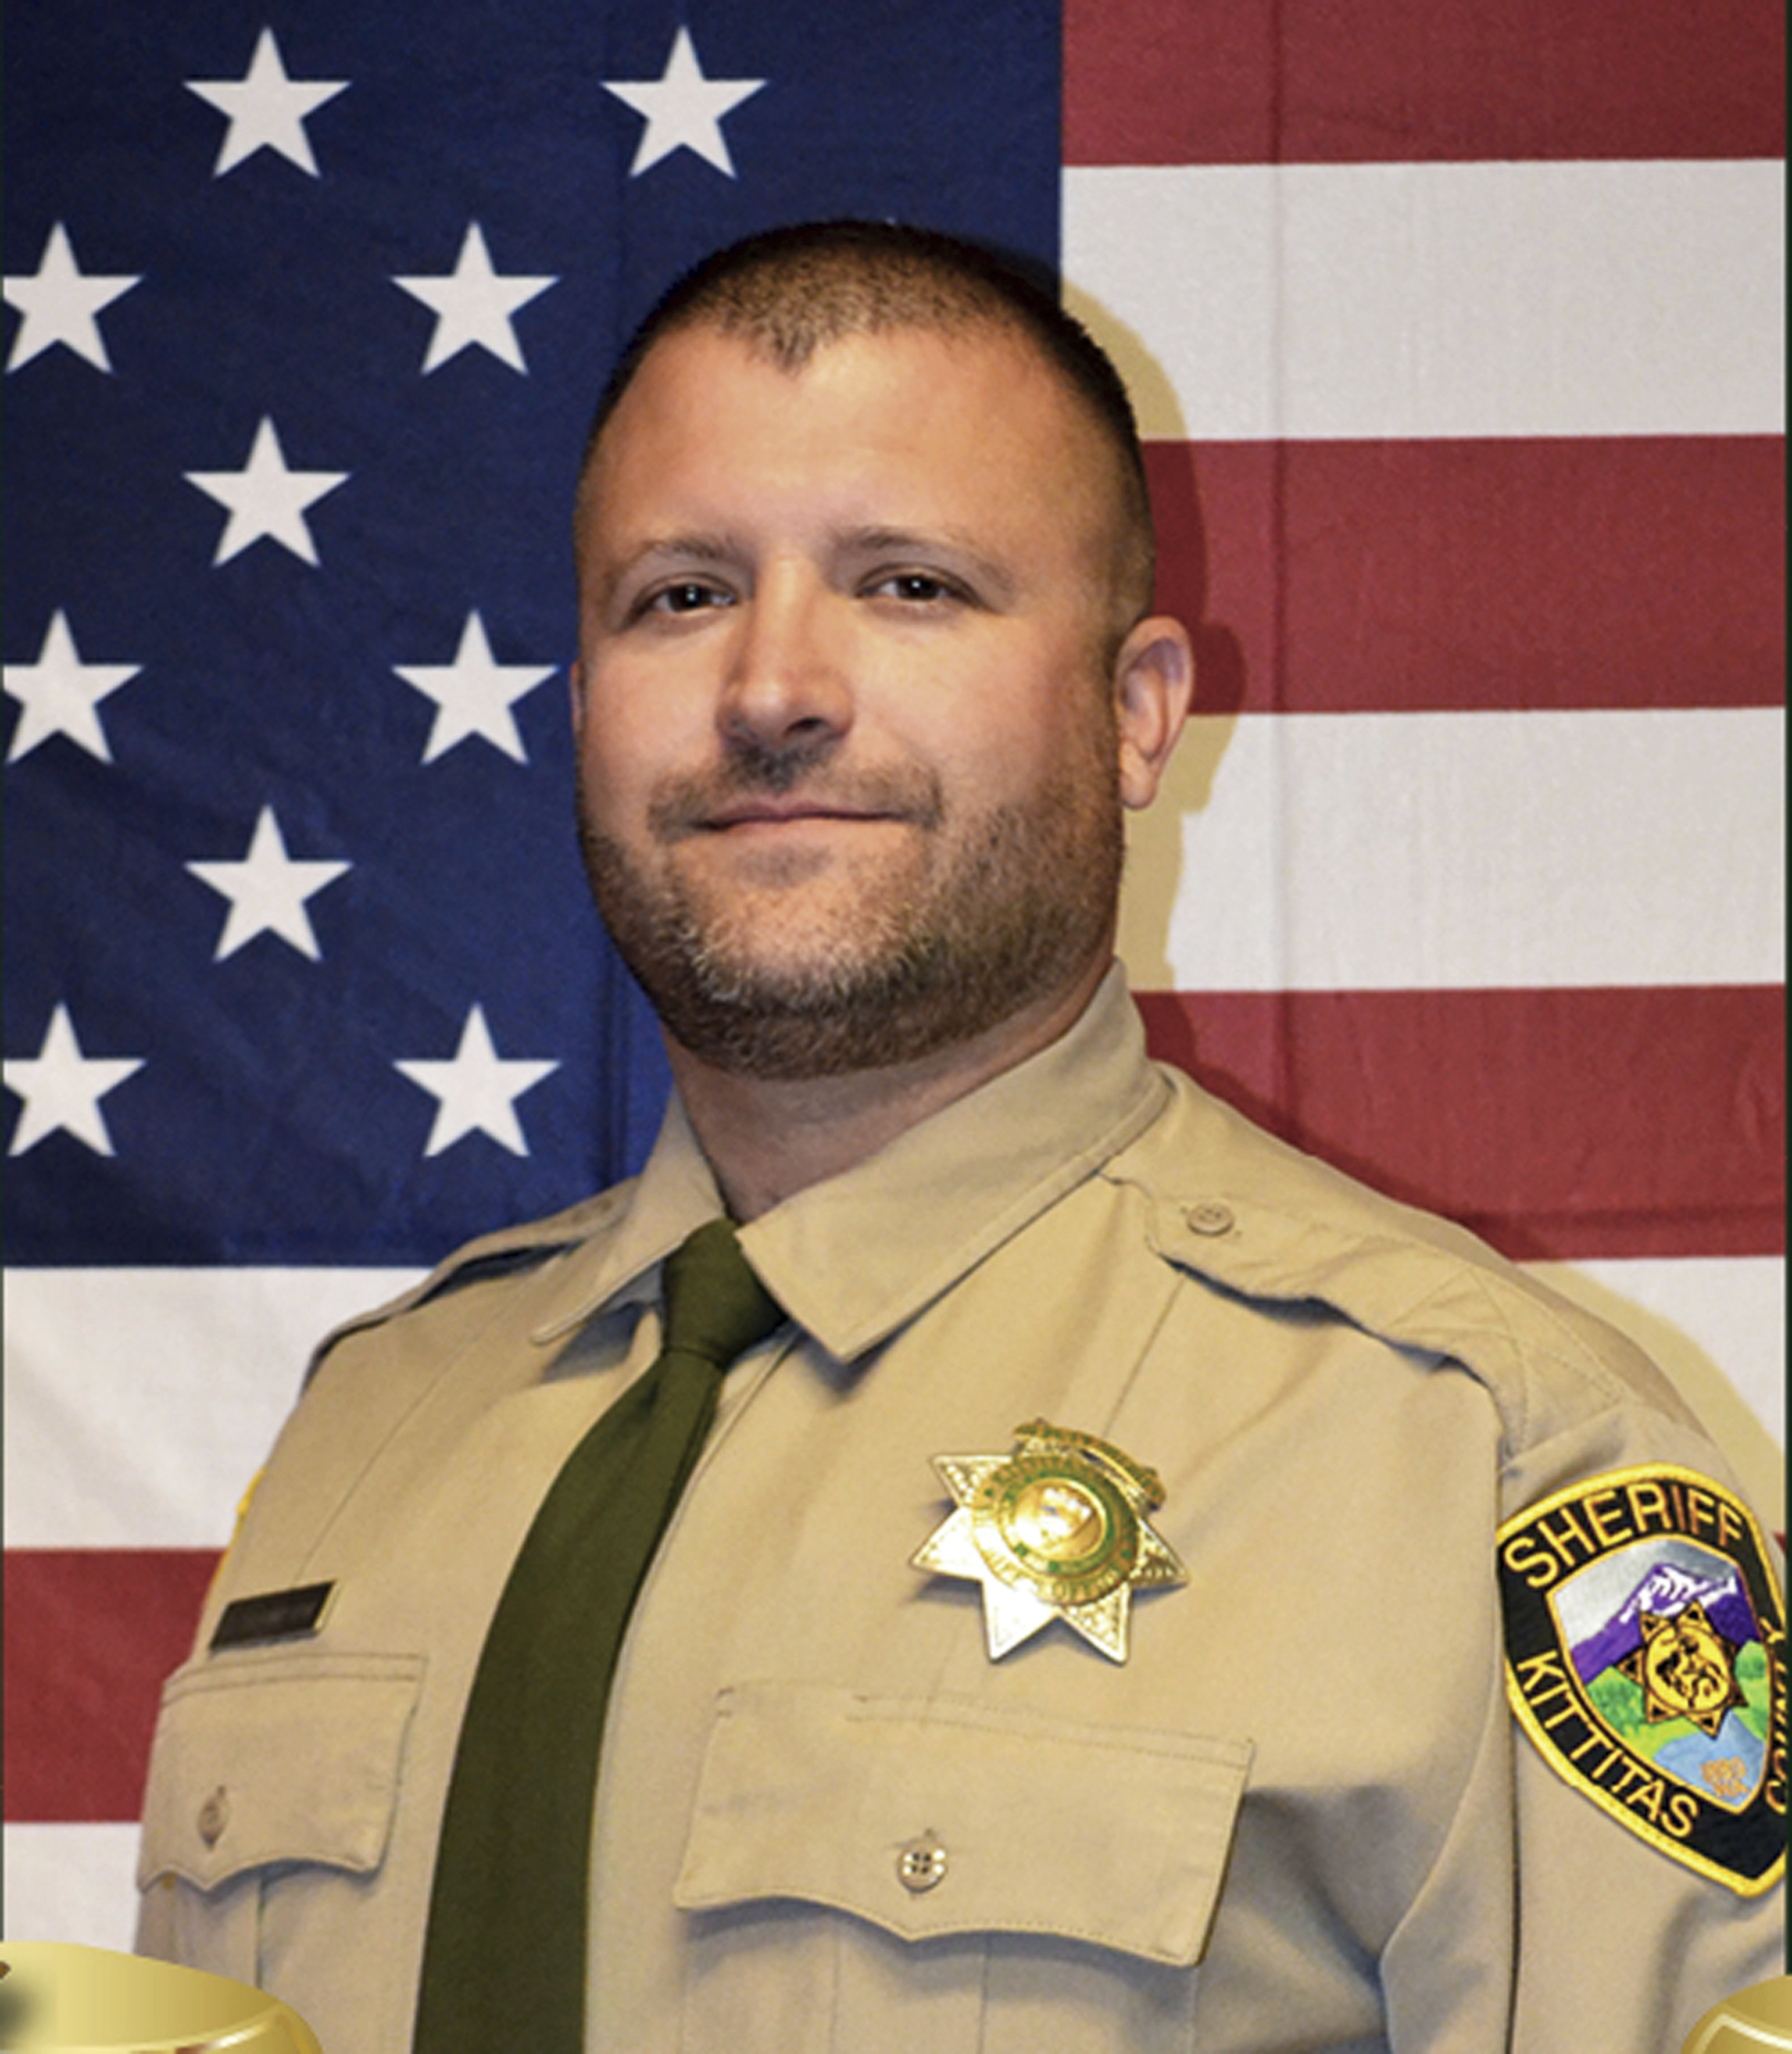 This undated photo released by the Kittitas County Sheriff's Office shows Deputy Ryan Thompson. Thompson, 42, was shot and killed and a police officer was wounded after they exchanged gunfire with a road rage driving suspect Tuesday, March 19, 2019, authorities said Wednesday, March, 20, 2019. The events unfolded Tuesday evening when the two officers tried to stop the suspect's vehicle after authorities received a complaint about the motorist's driving, authorities said. (Kittitas County Sheriff's Office via AP)